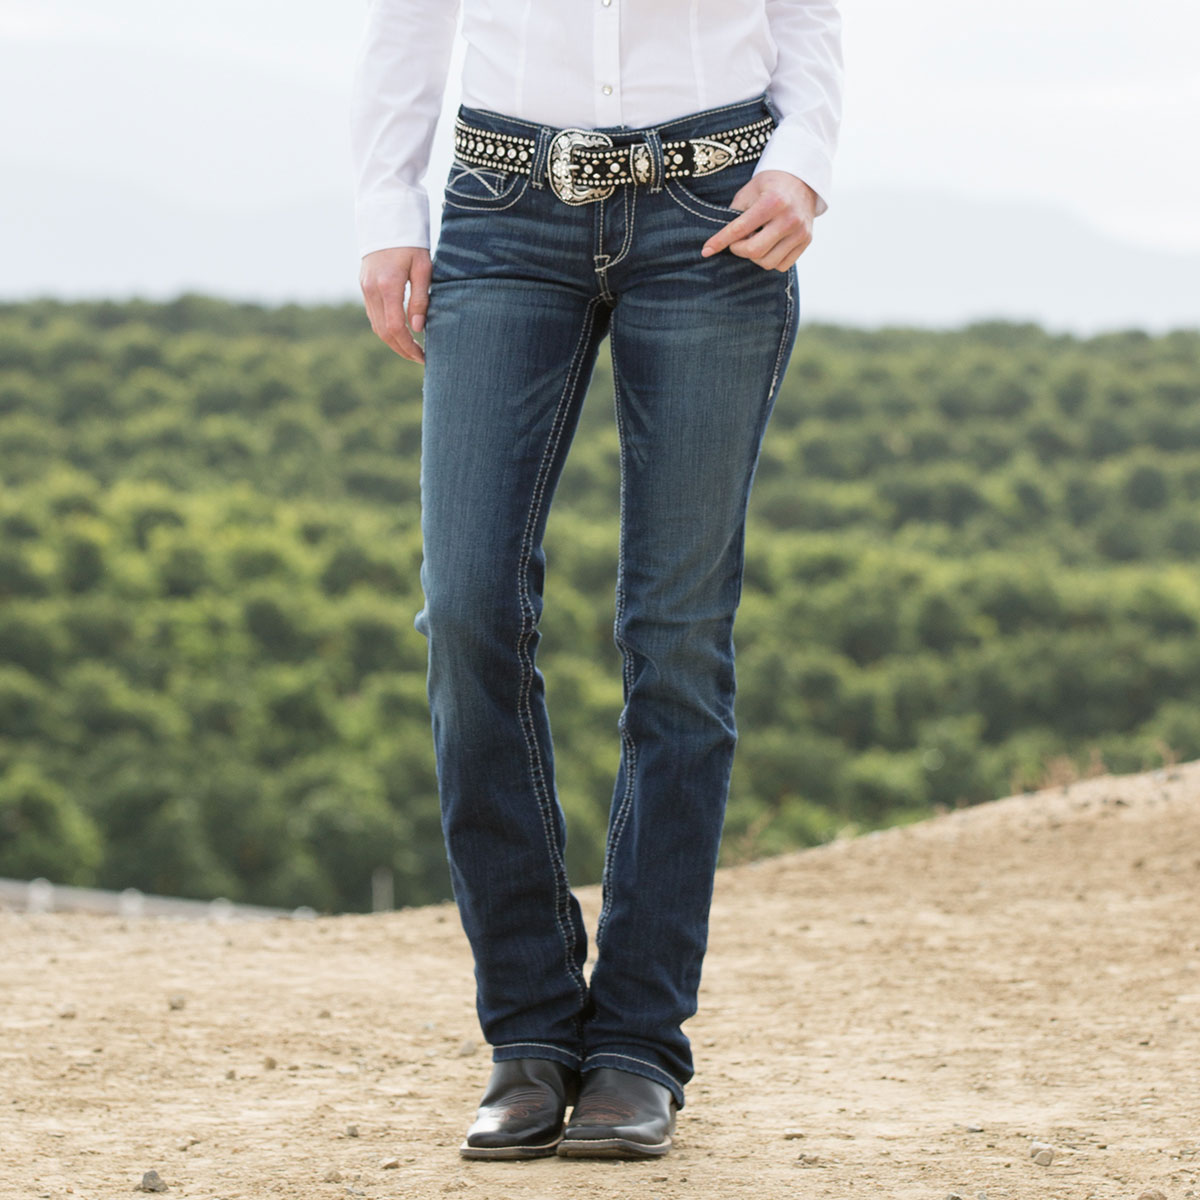 0c33f3a0 Ariat Women's R.E.A.L. Straight Icon Jeans- Ocean